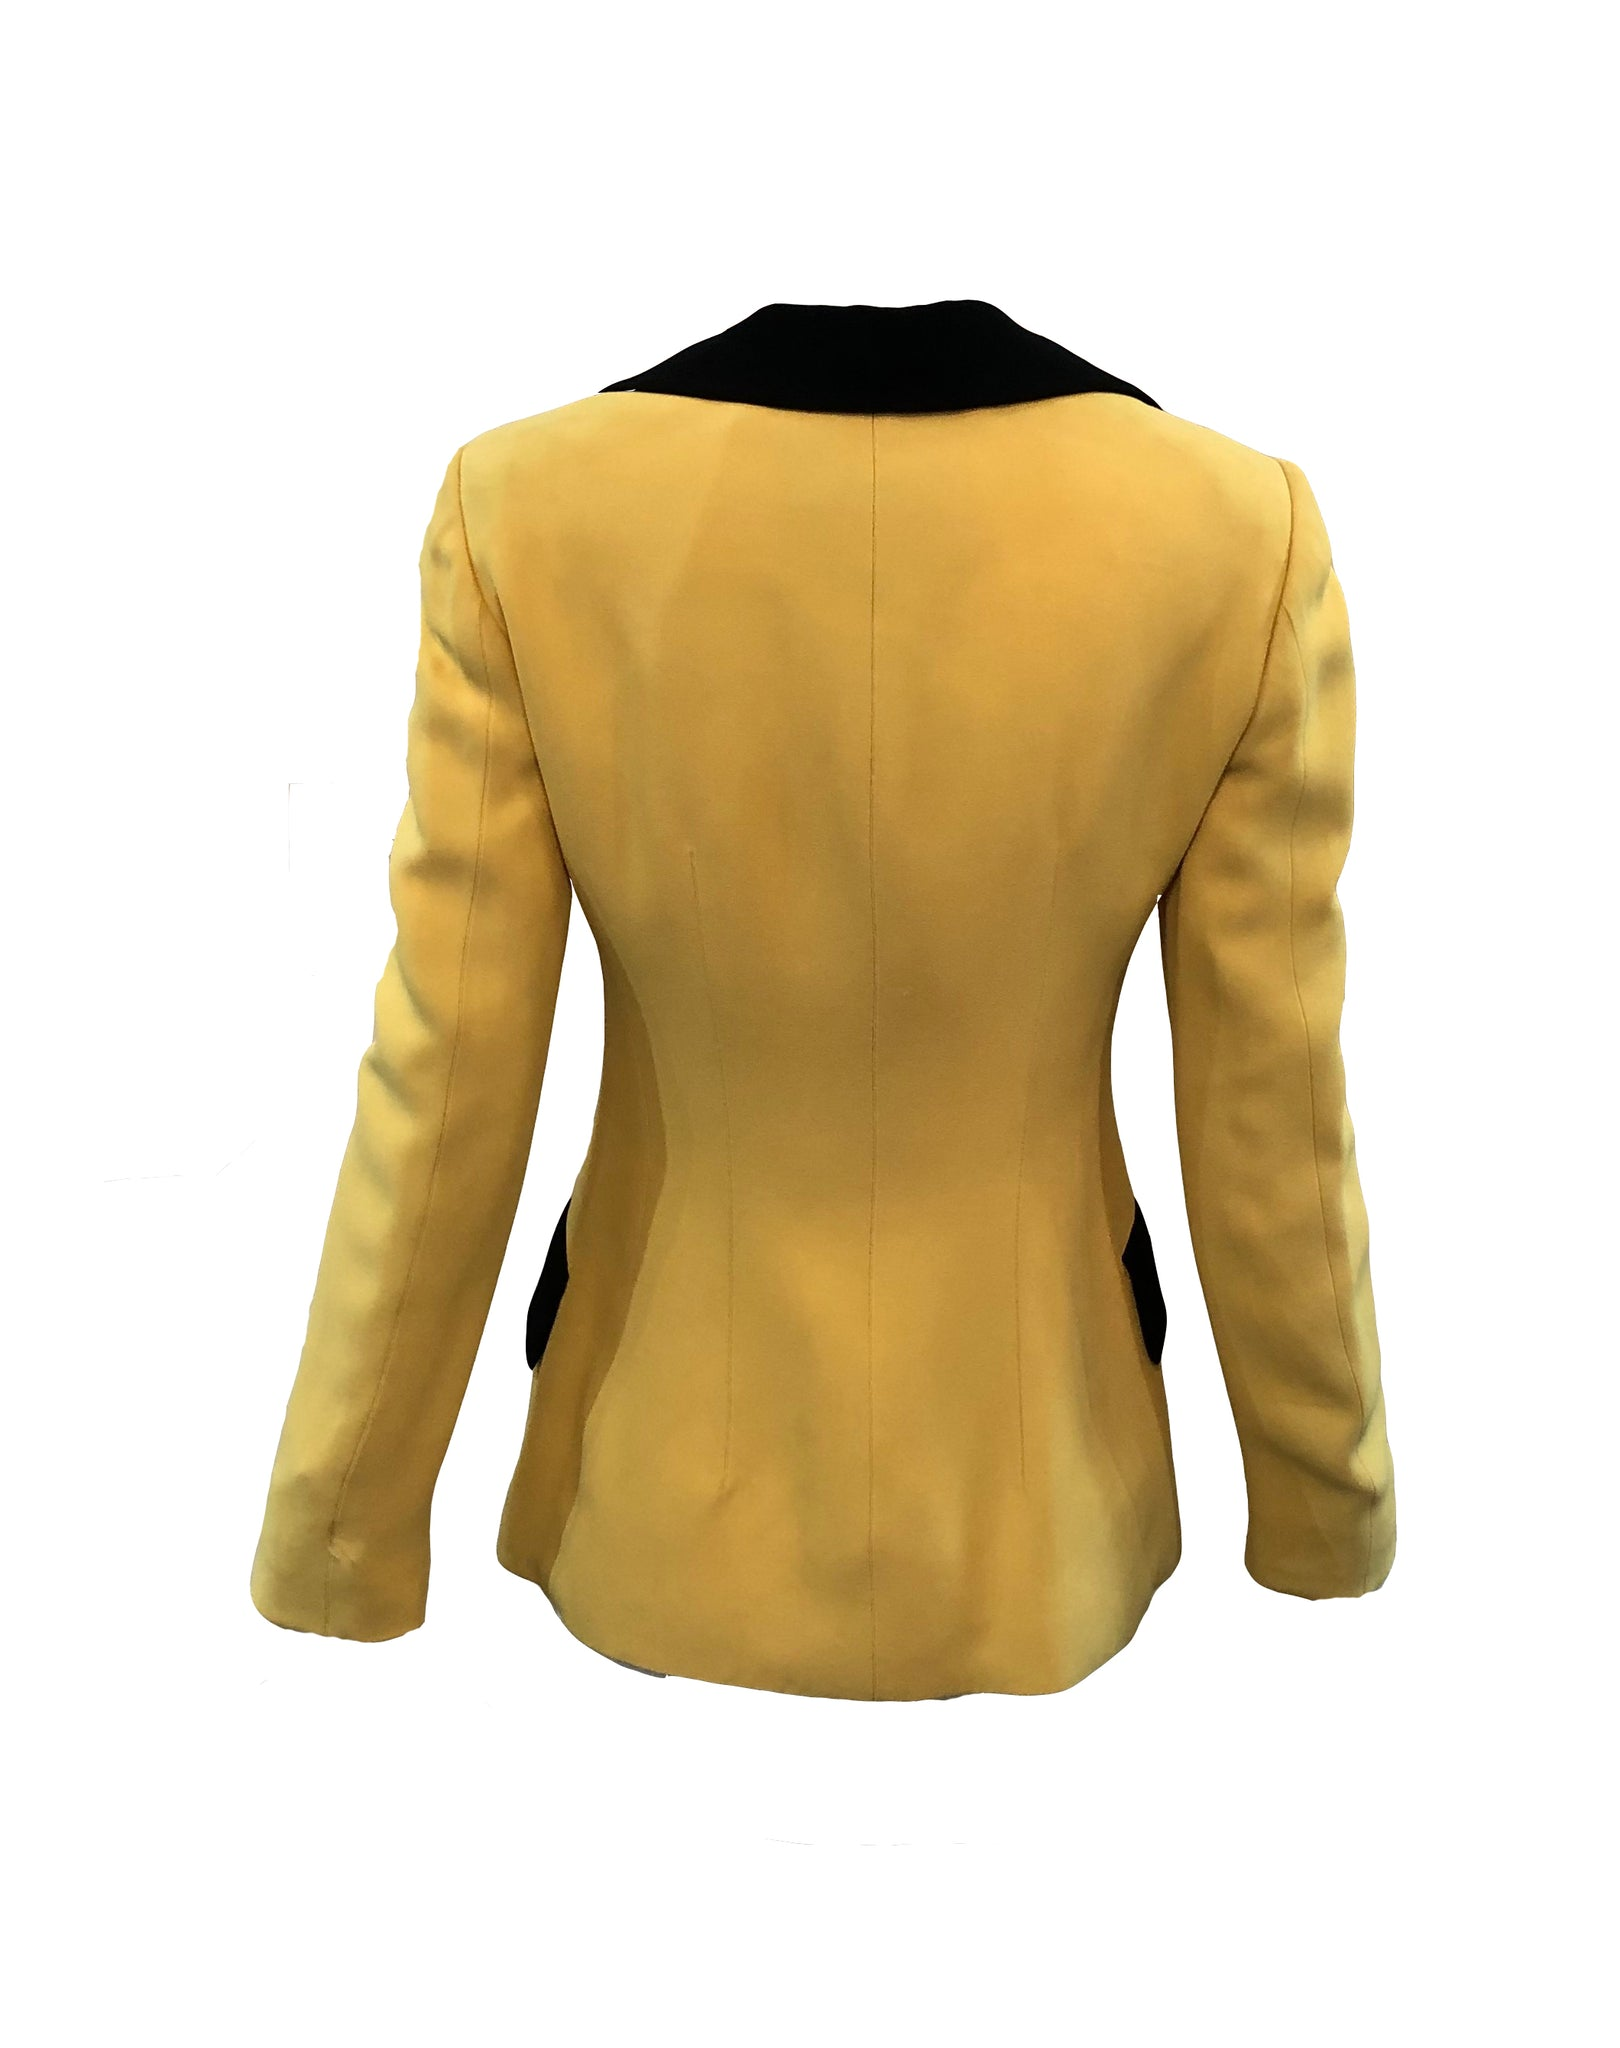 Moschino Yellow and Black Bumblebee Jacket Back 3 of 5